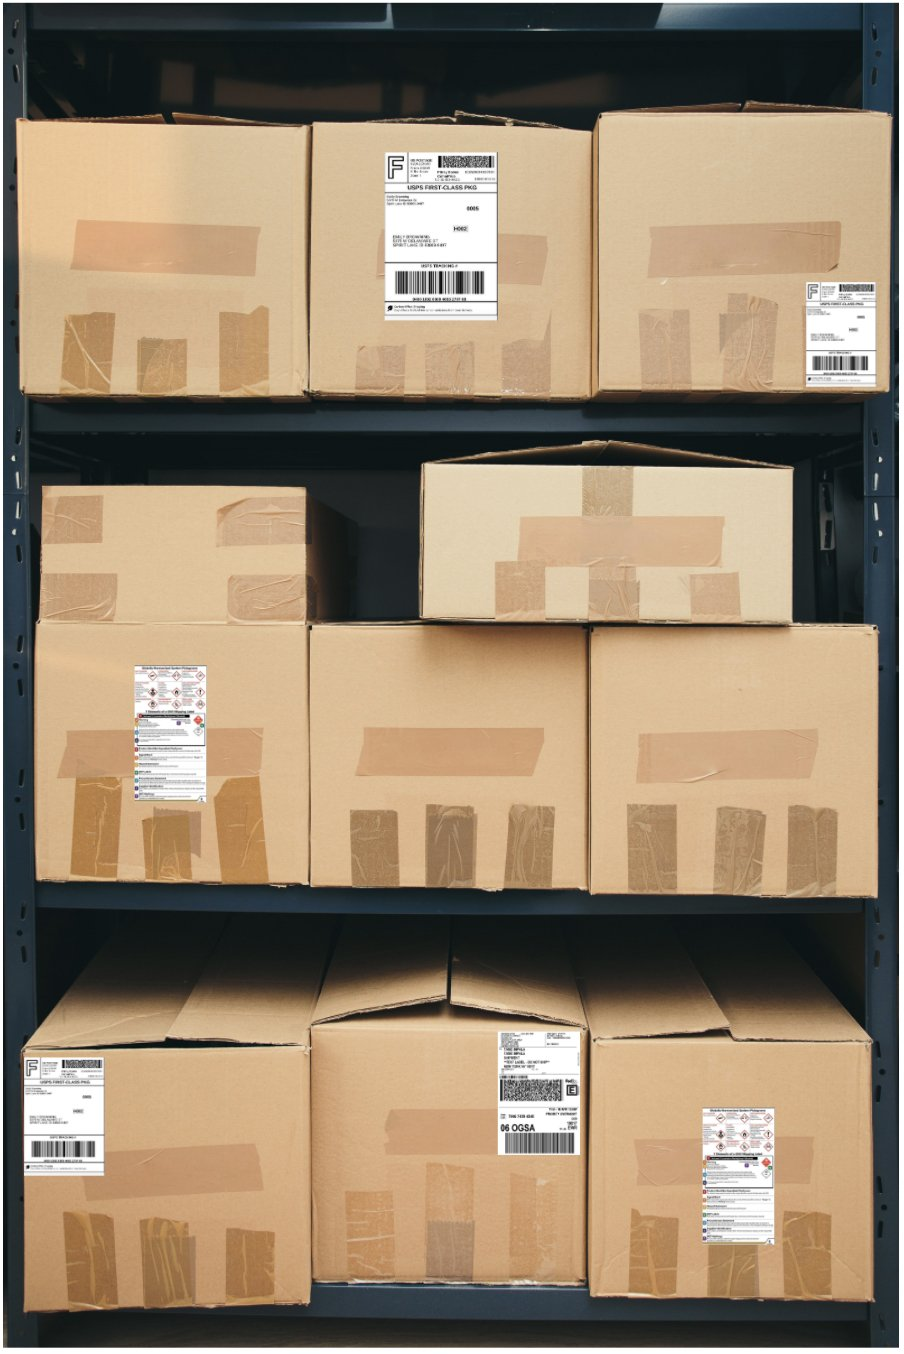 Parcels with BOUNTE Parcel Tracking Labels